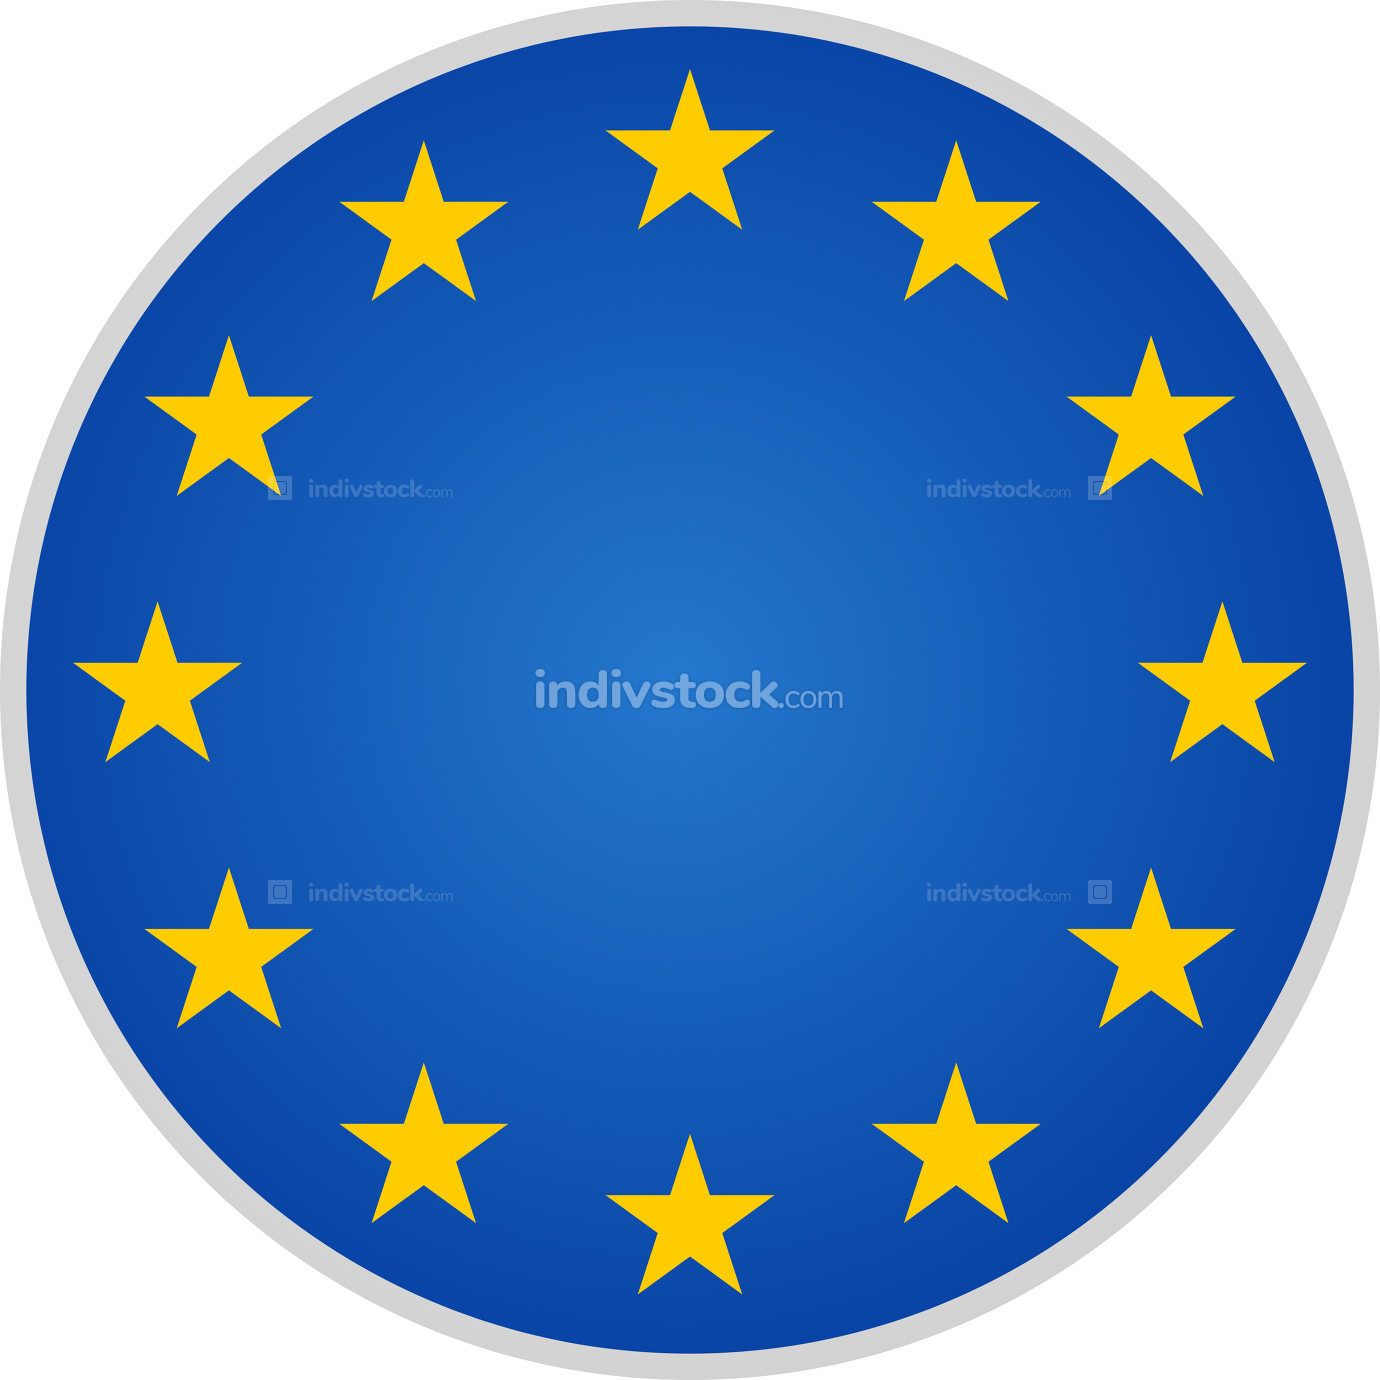 blue yellow isolated on white EU Europe symbol with 12 stars 3d-